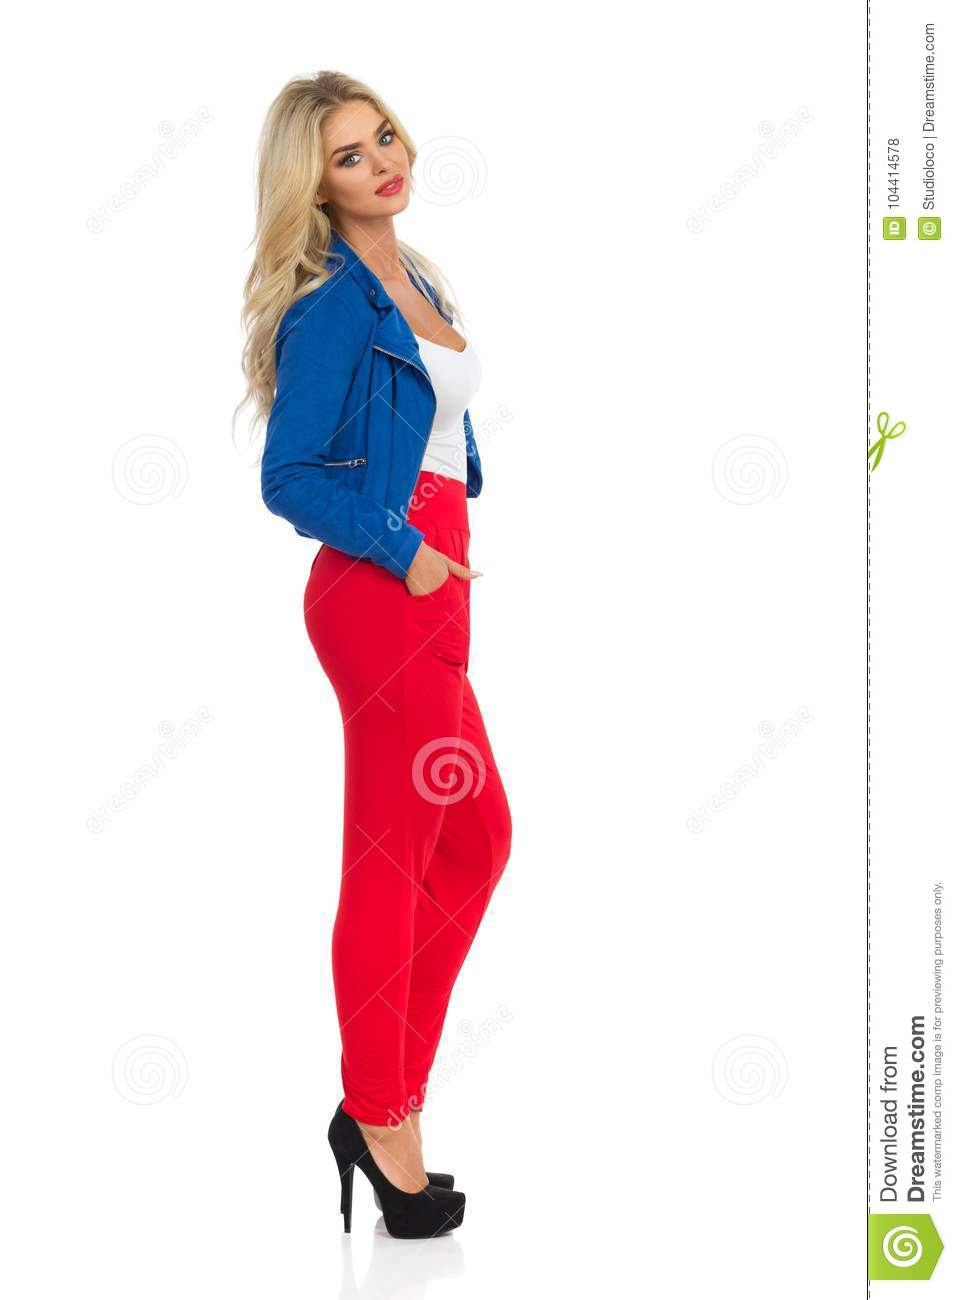 Beautiful Blond Woman Is Standing In Red Pants, Blue Jacket And High Heels. Side View.